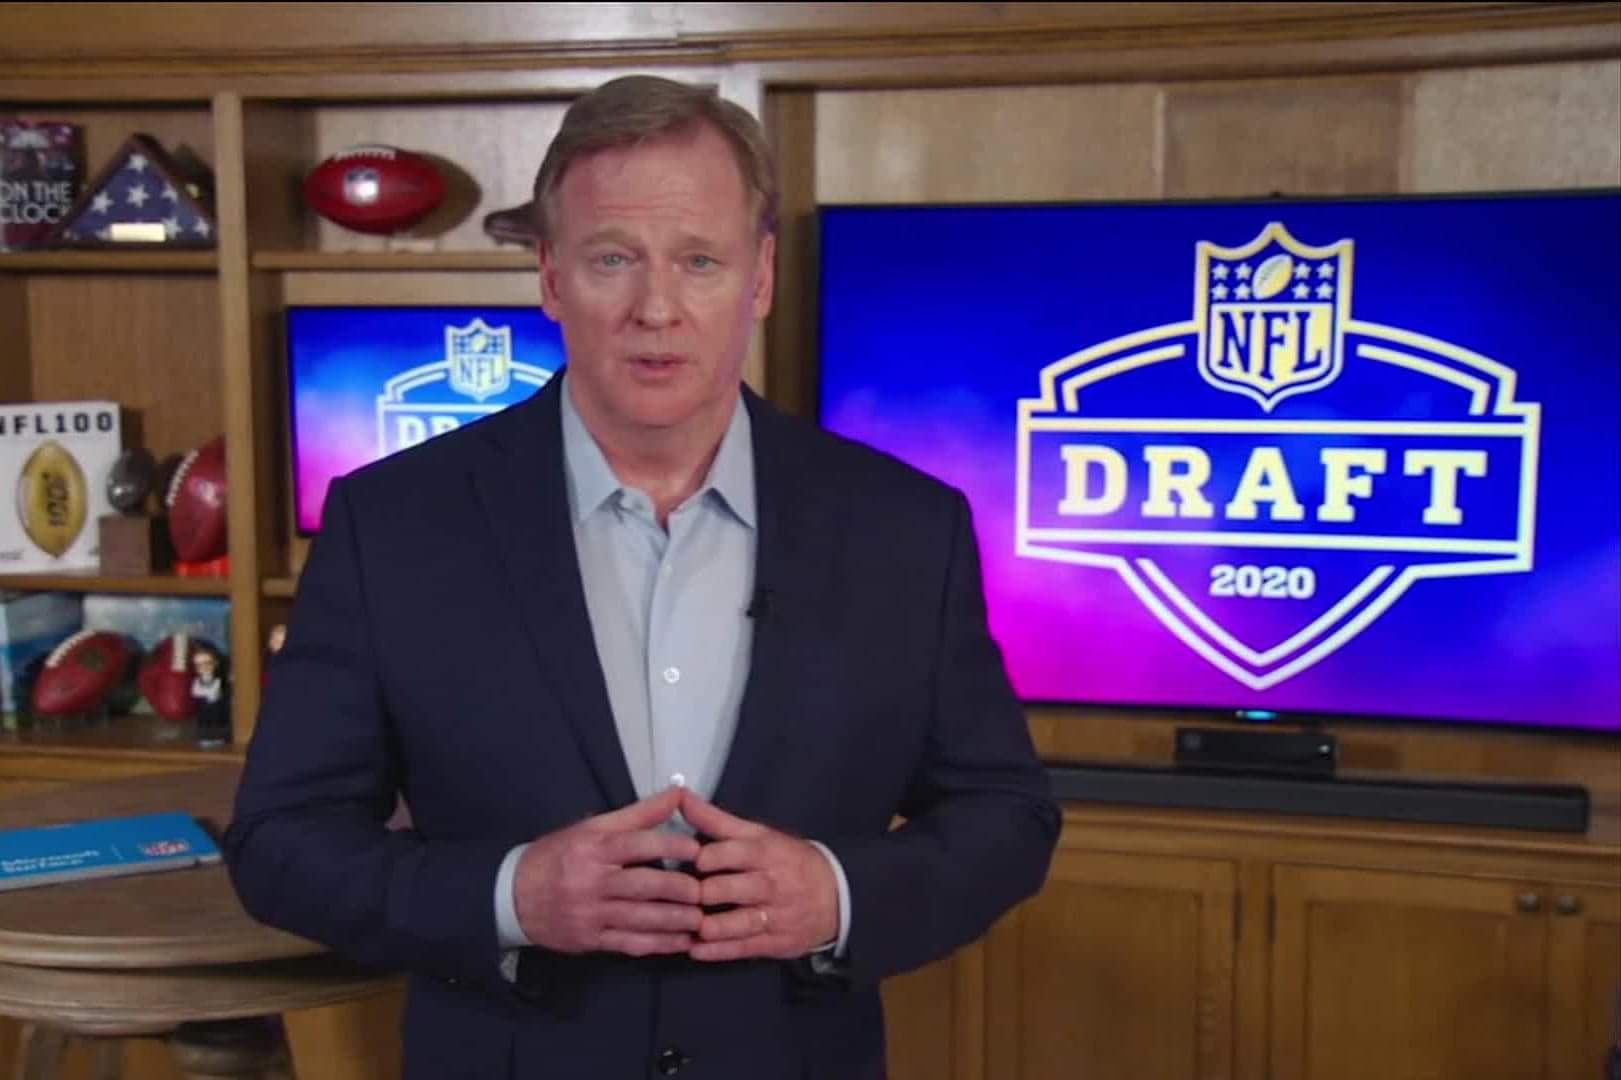 NFL Commissioner Roger Goodell/via Associated Press